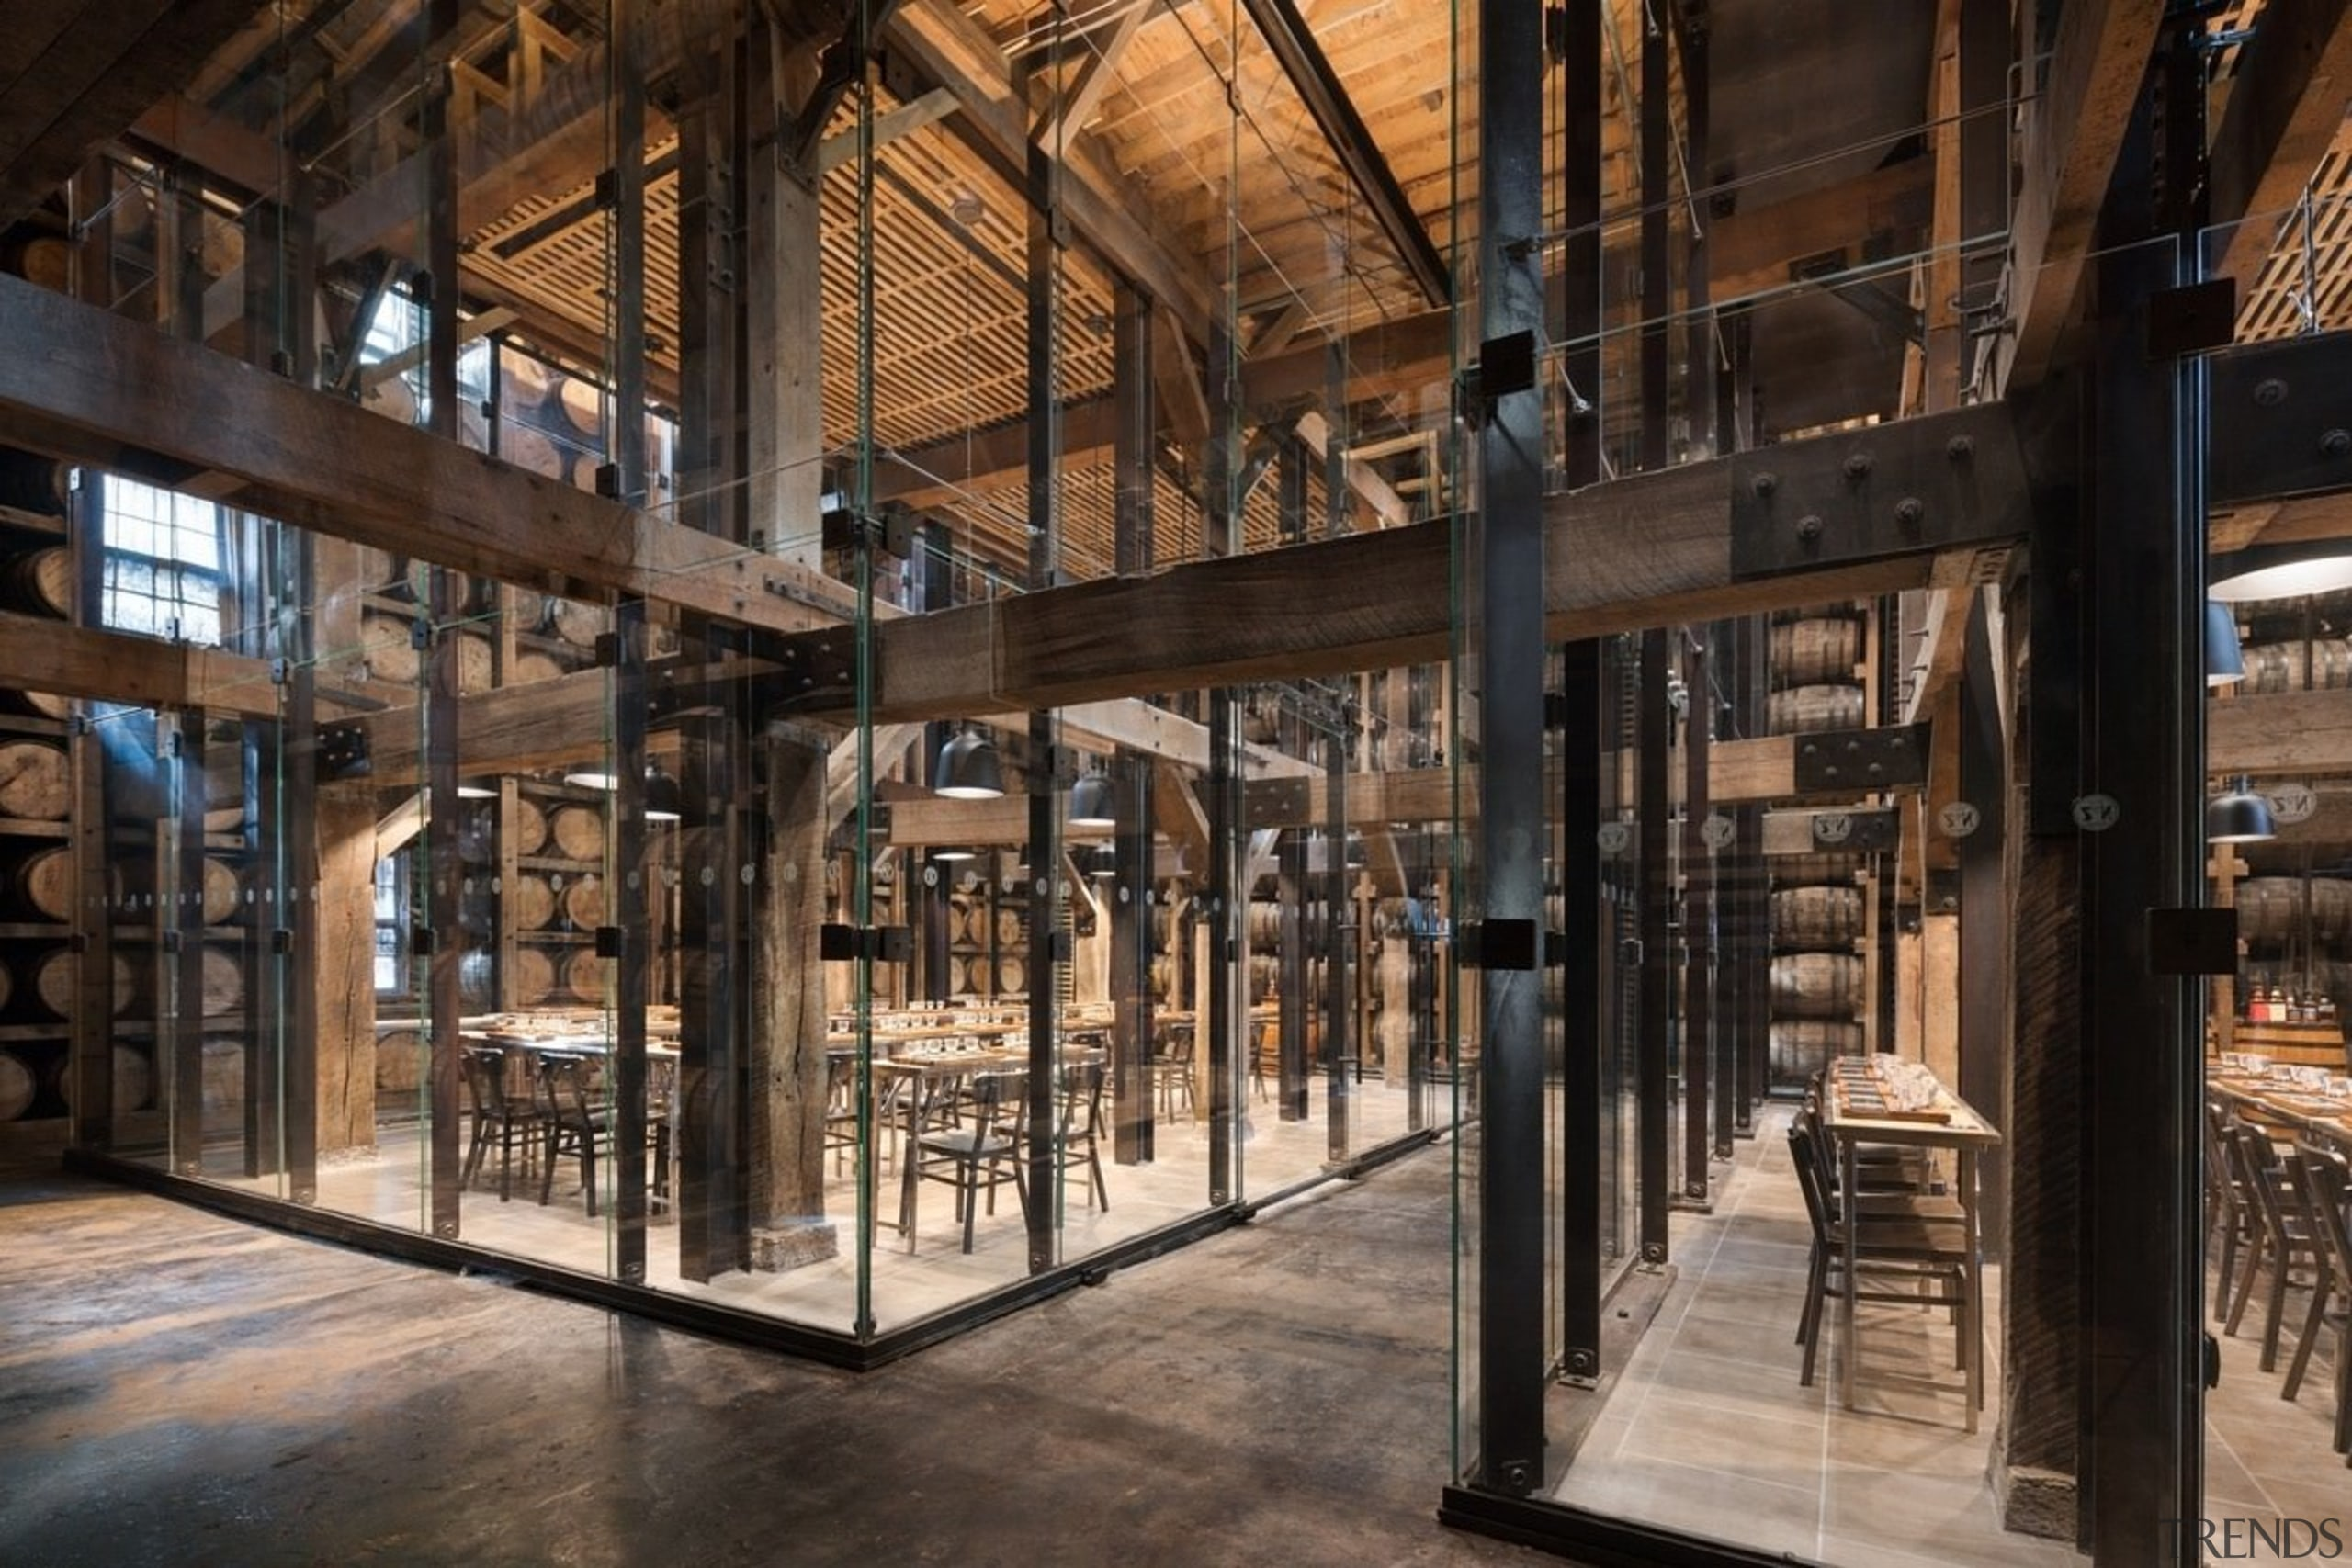 Glazed tasting pavilions within Barrel House 1-14 - tourist attraction, black